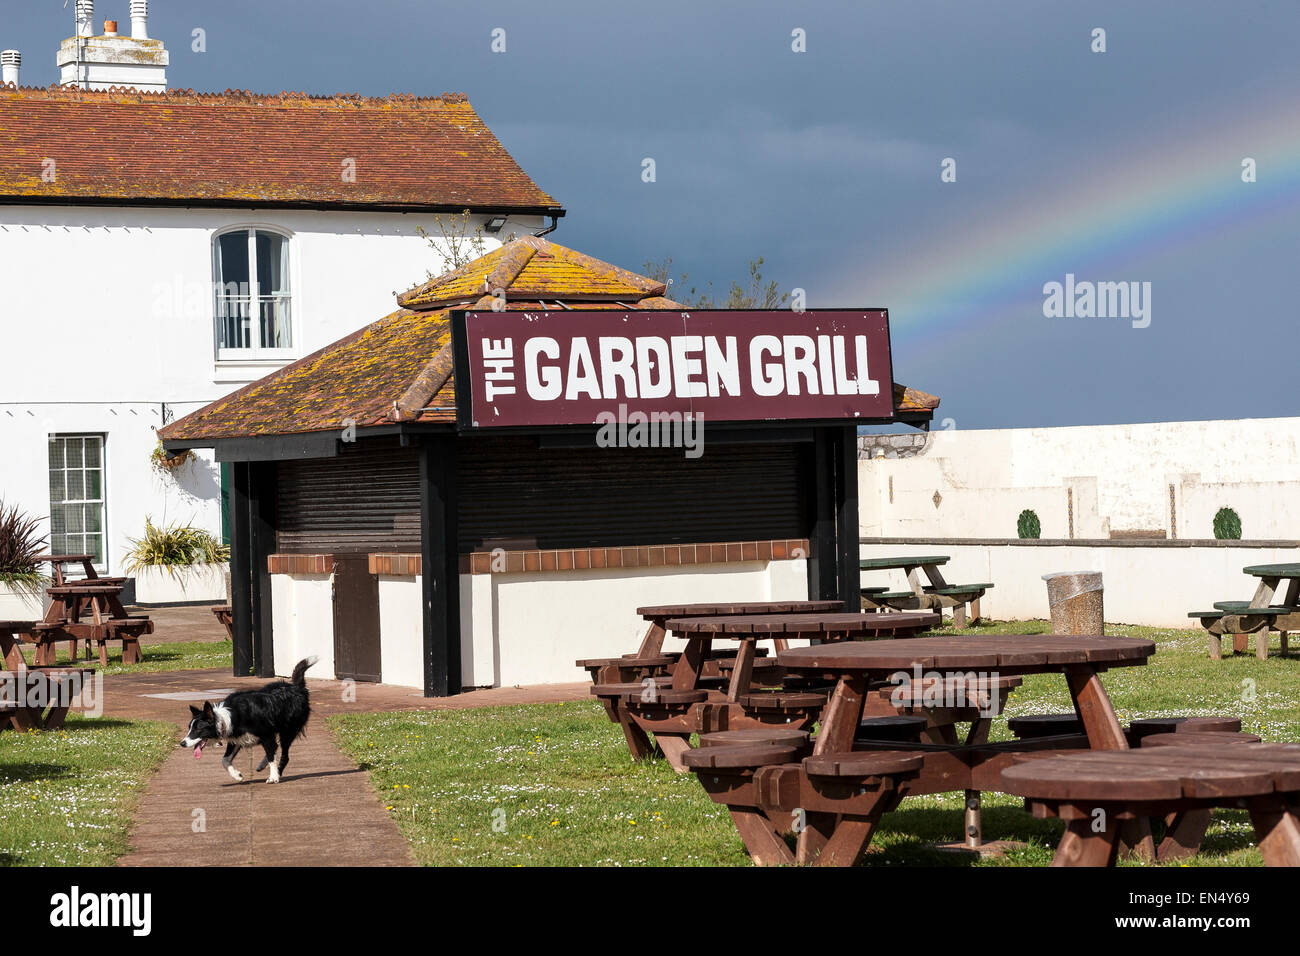 garden grill, eat and drink outdoors, the best alfresco dining,Beer gardens, rooftop bars and outdoor dining spots - Stock Image